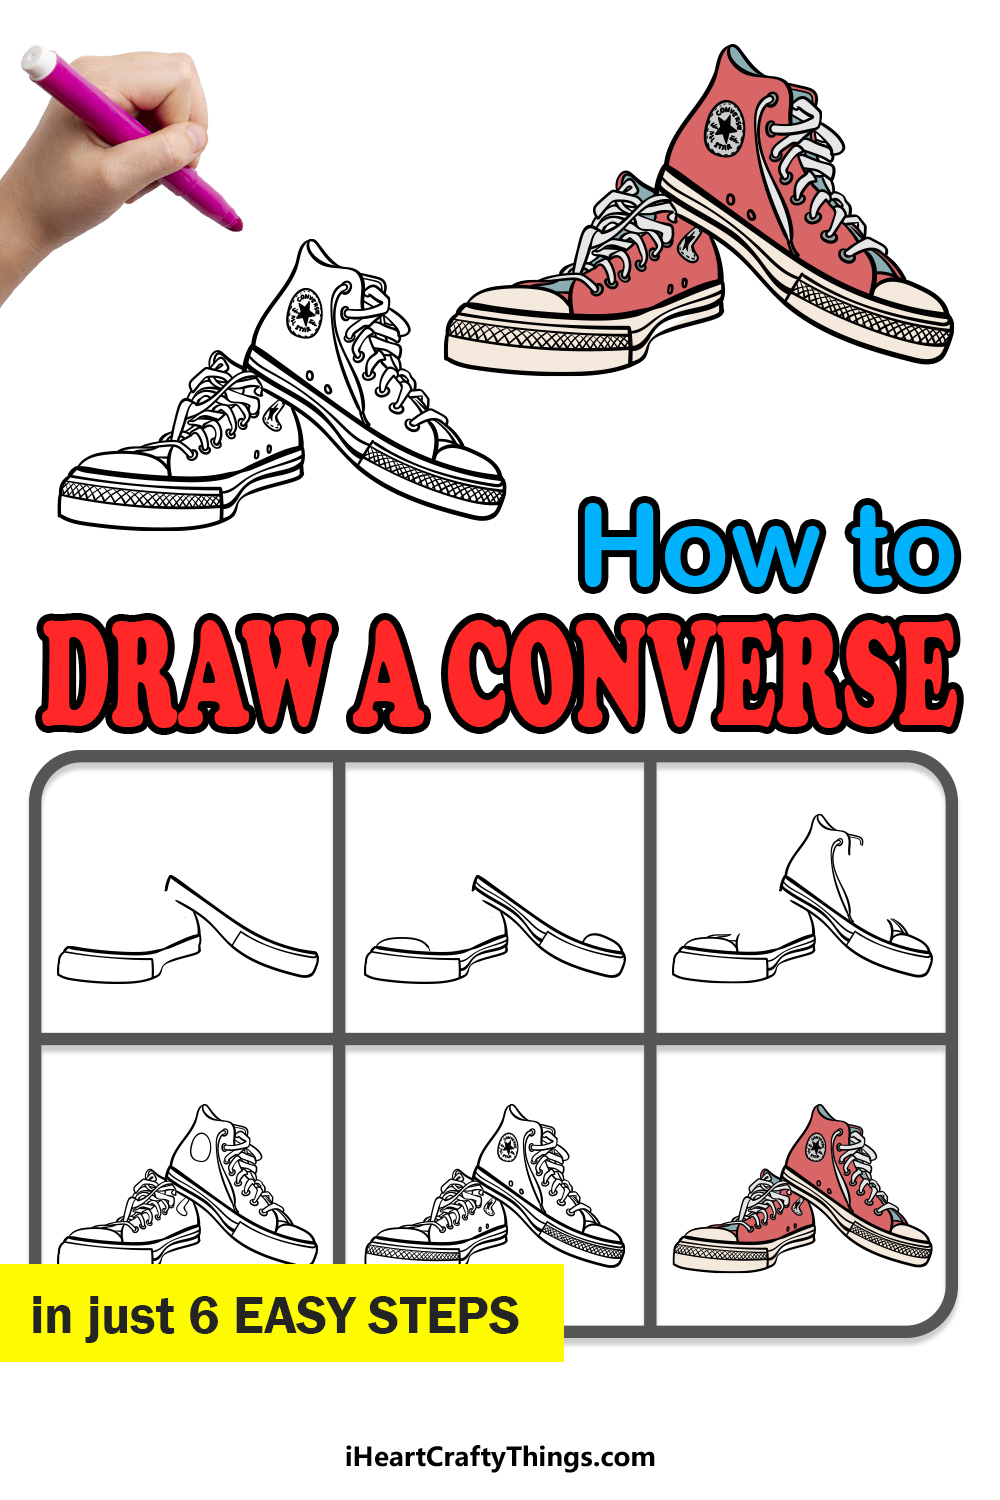 how to draw a converse in 6 easy steps